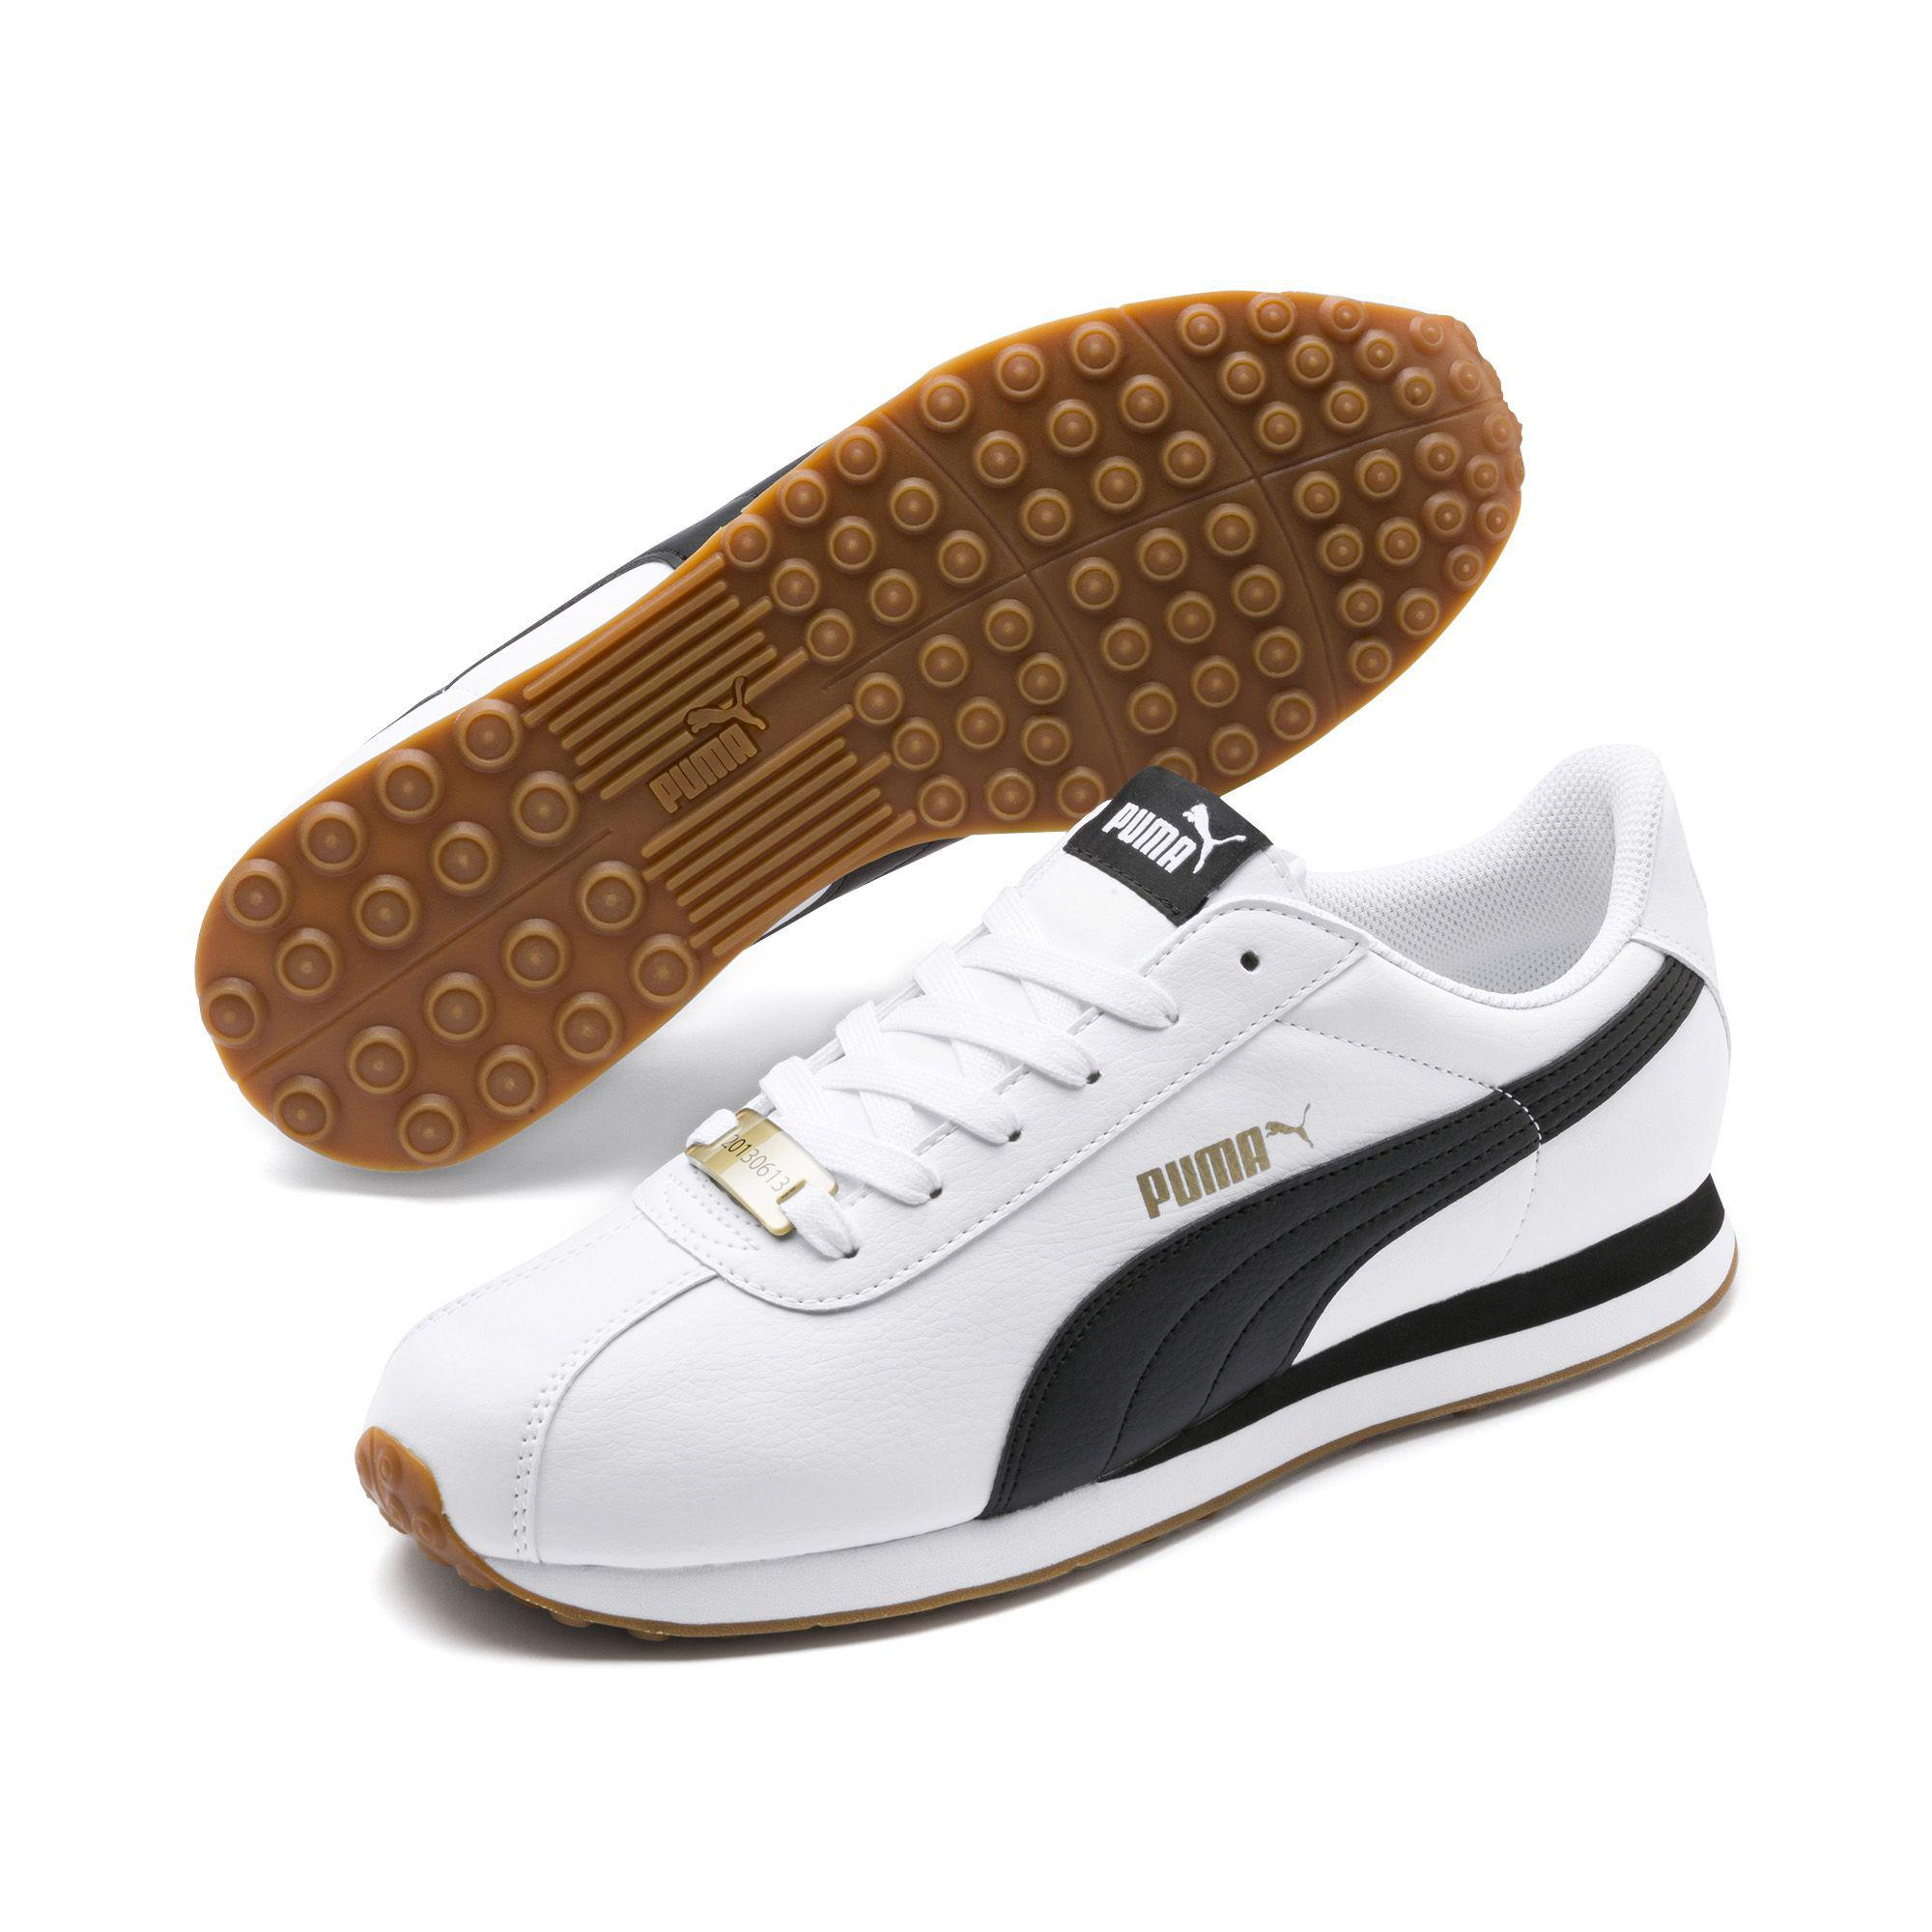 876f3672978 Lyst - PUMA X Bts Turin Sneakers in White for Men